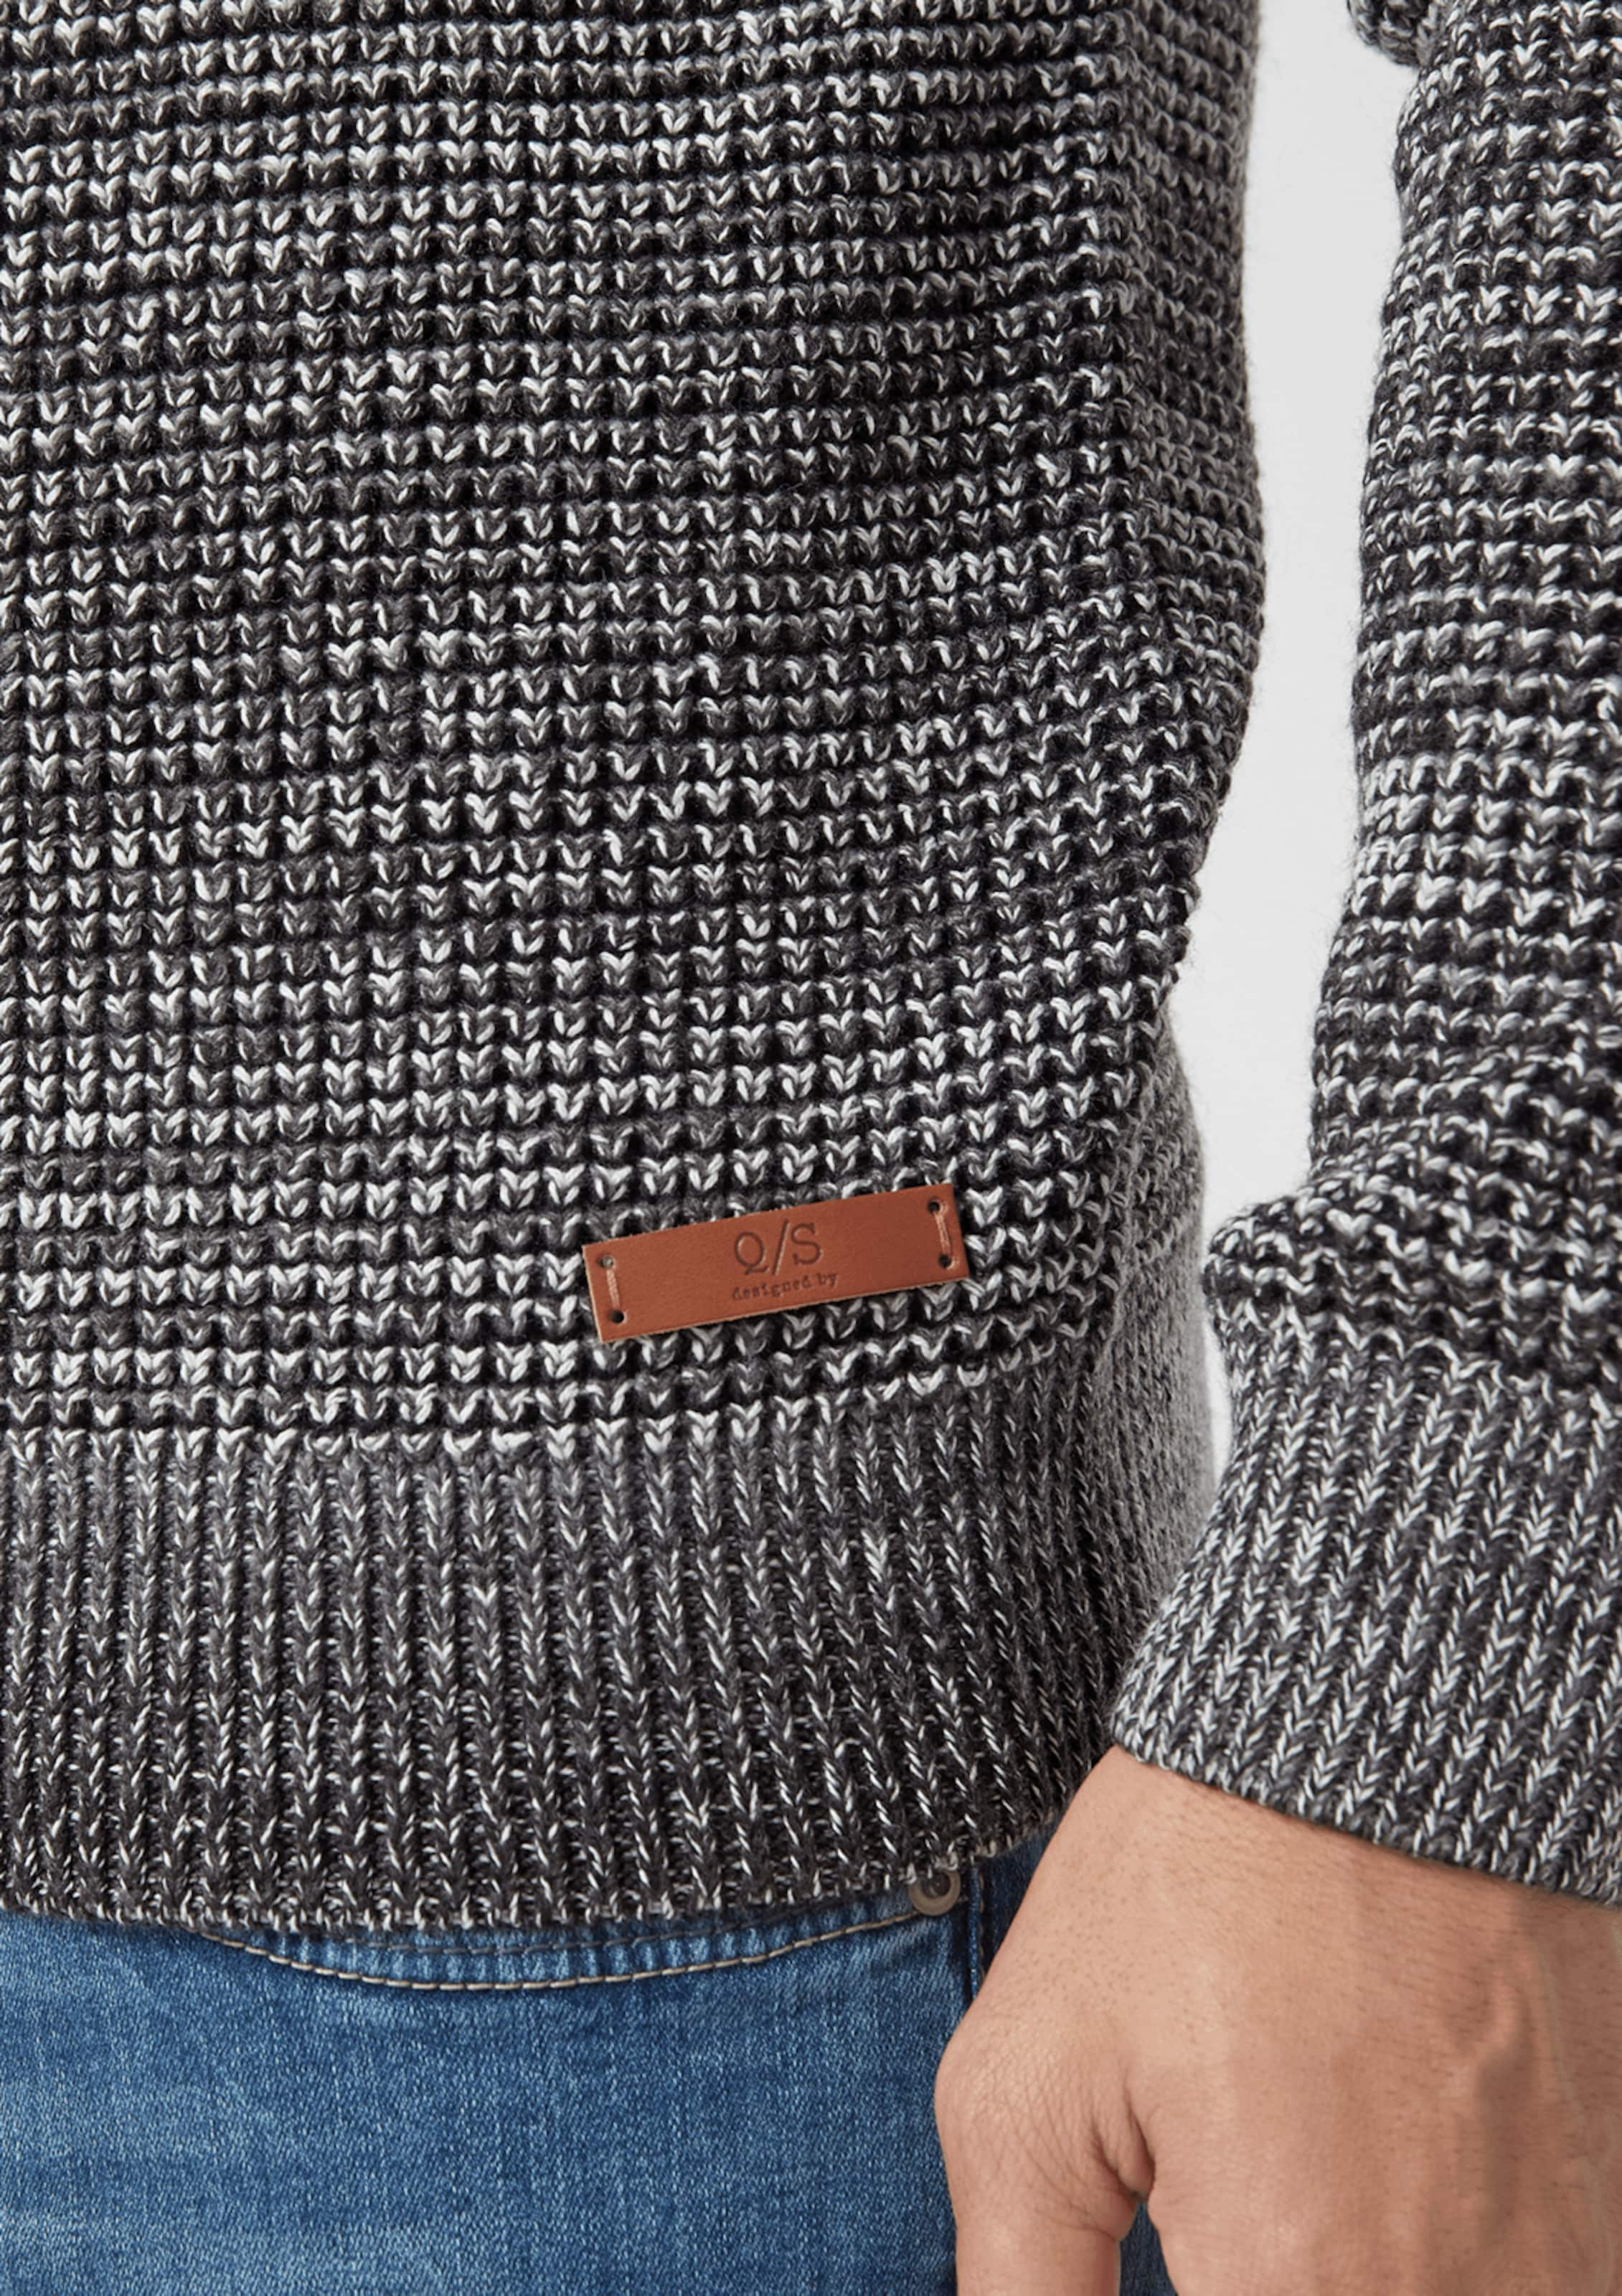 Pullover By Graumeliert Designed Q In s gb7yf6